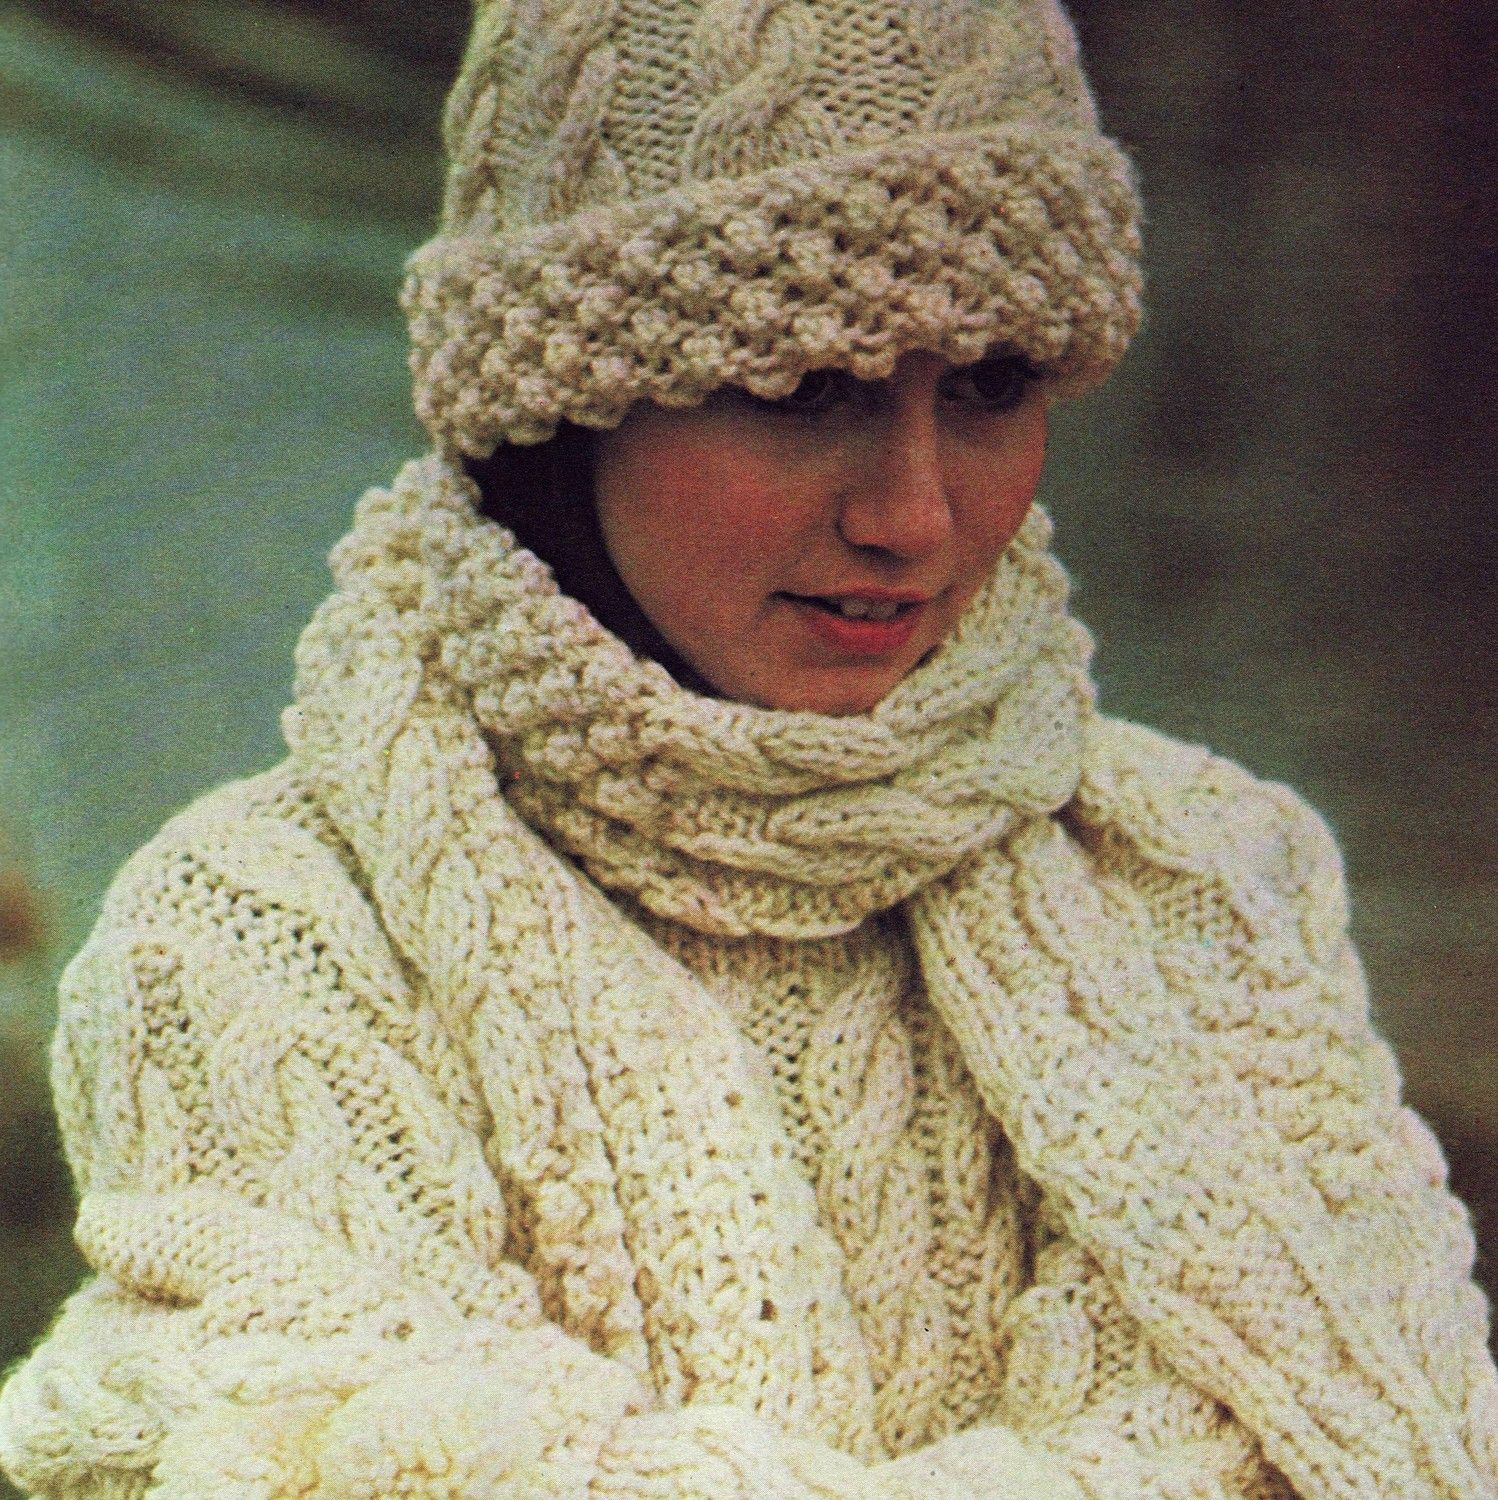 Free Aran Knitting Pattern : INSTANT DOWNLOAD PDF Vintage Knitting Pattern Aran Sweater Hat Scarf and Glov...